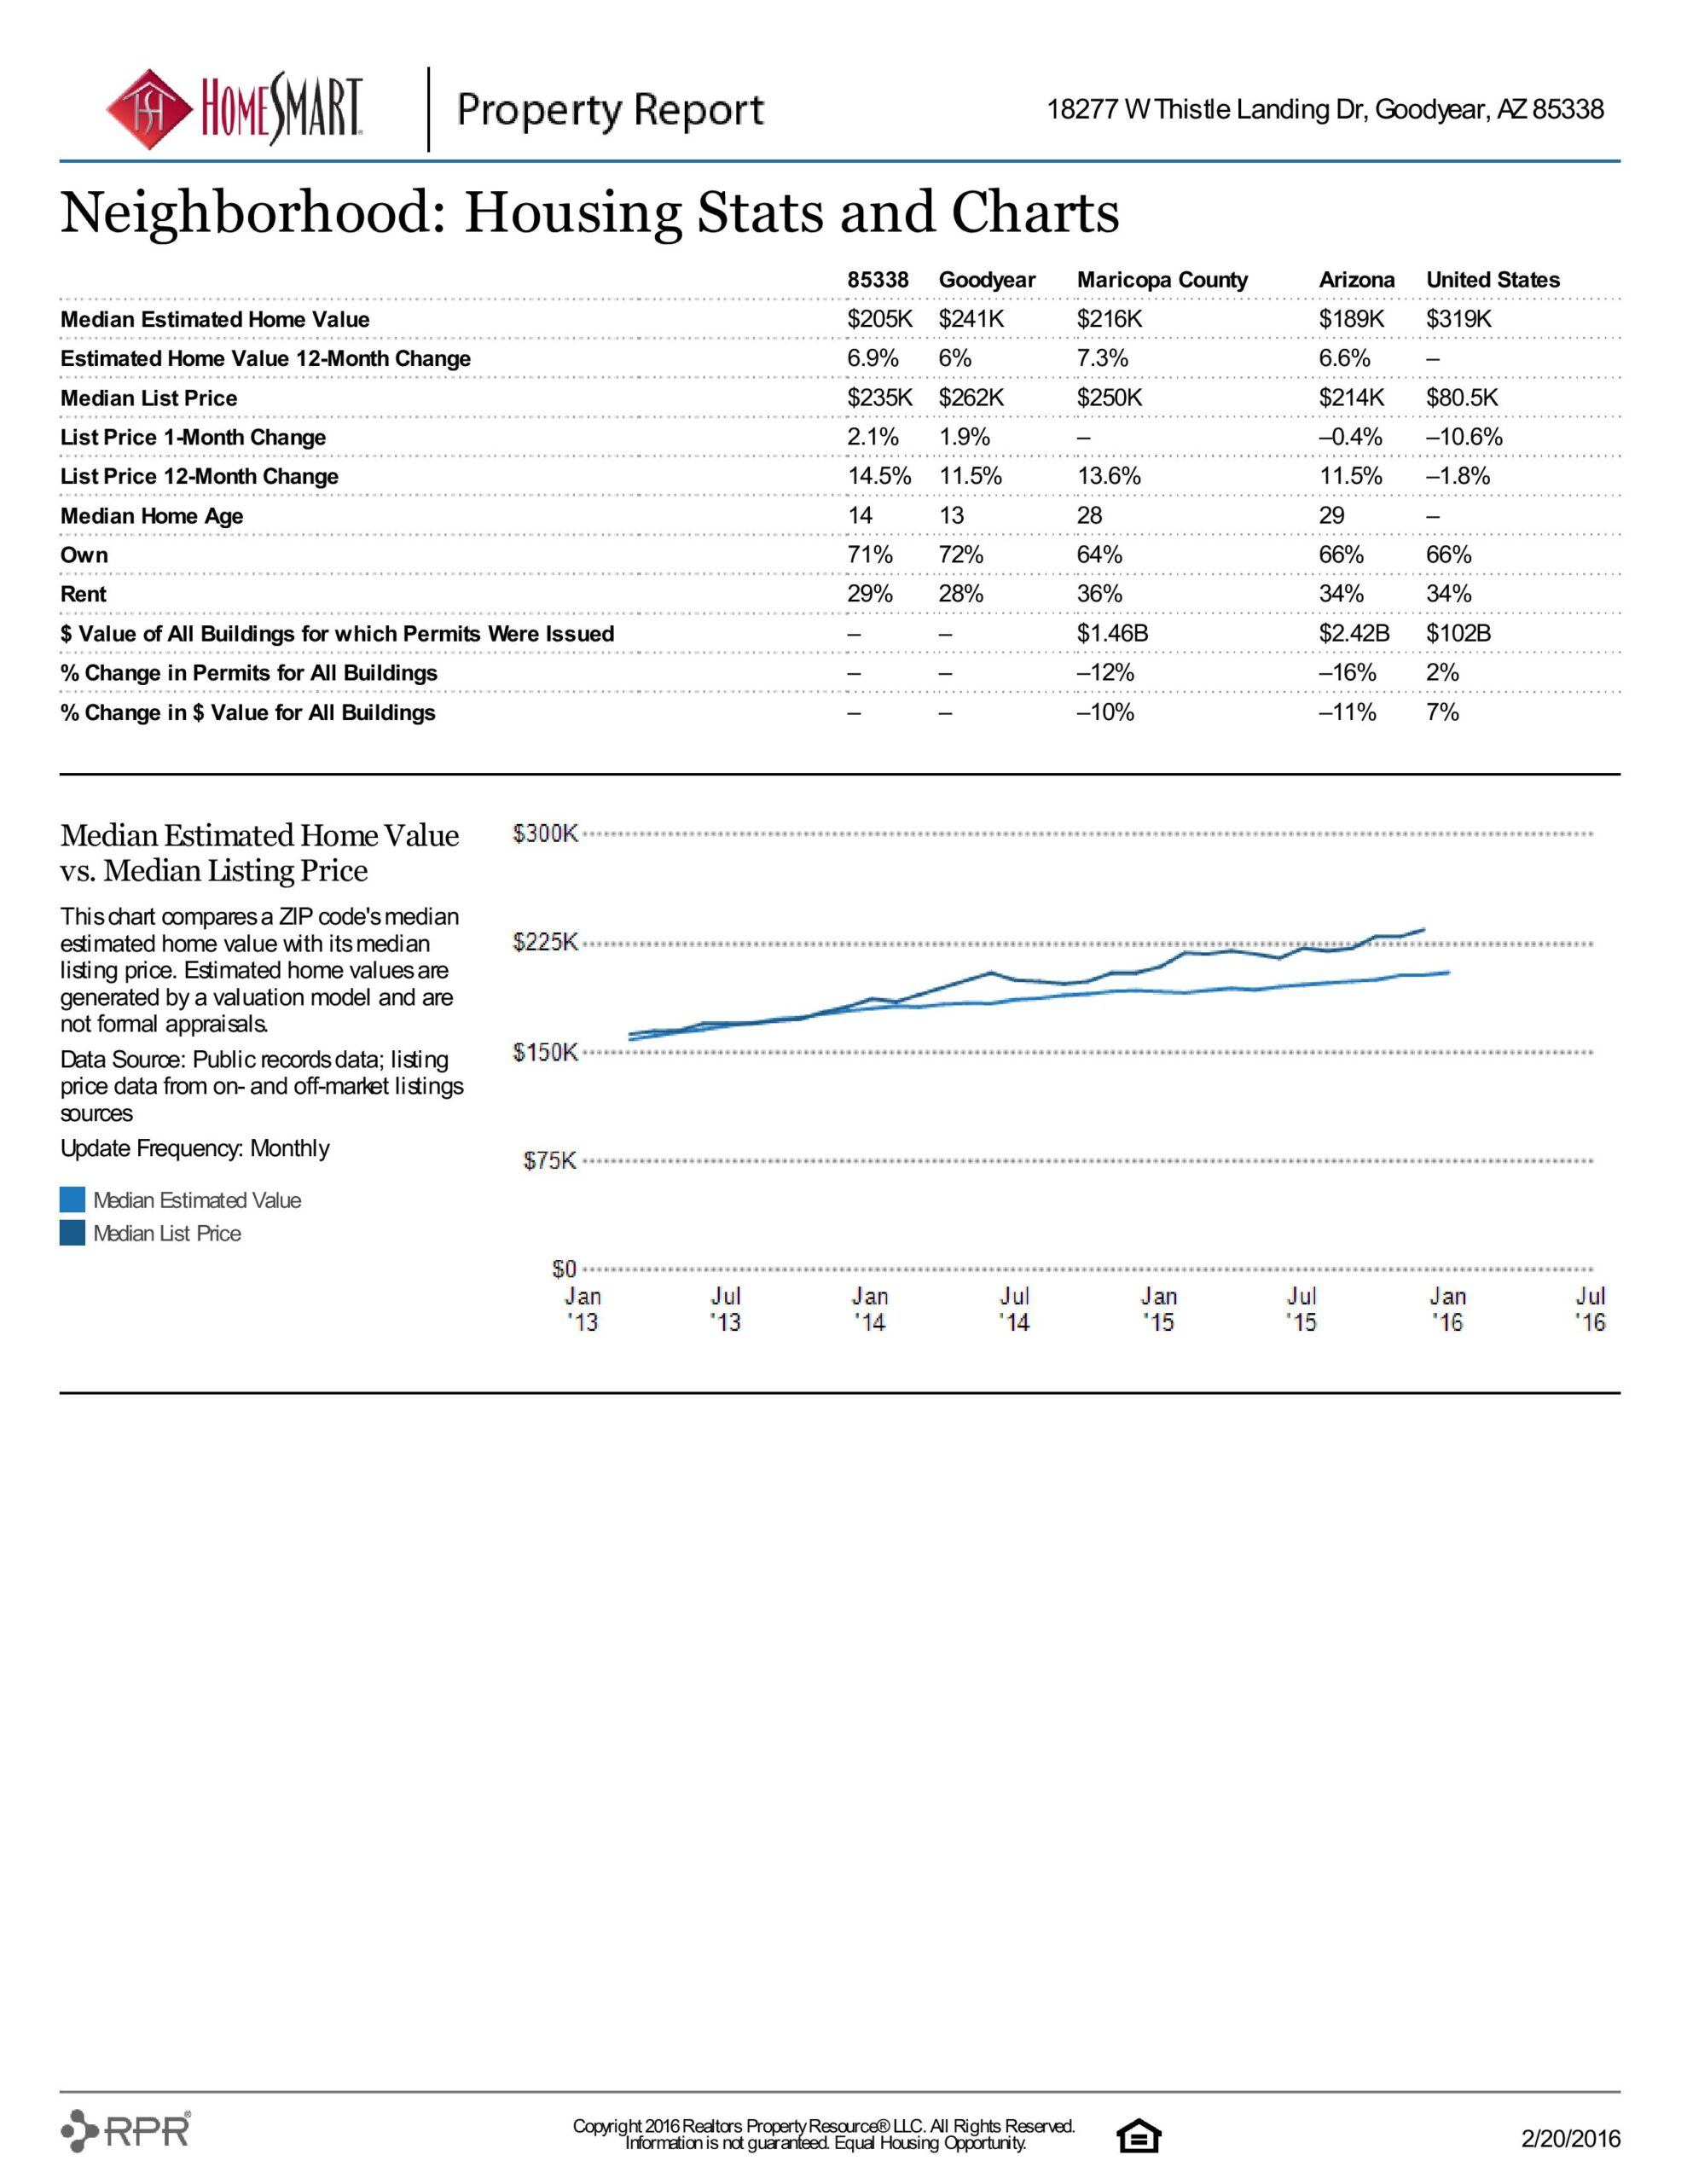 18277 W THISTLE LANDING DR PROPERTY REPORT-page-014